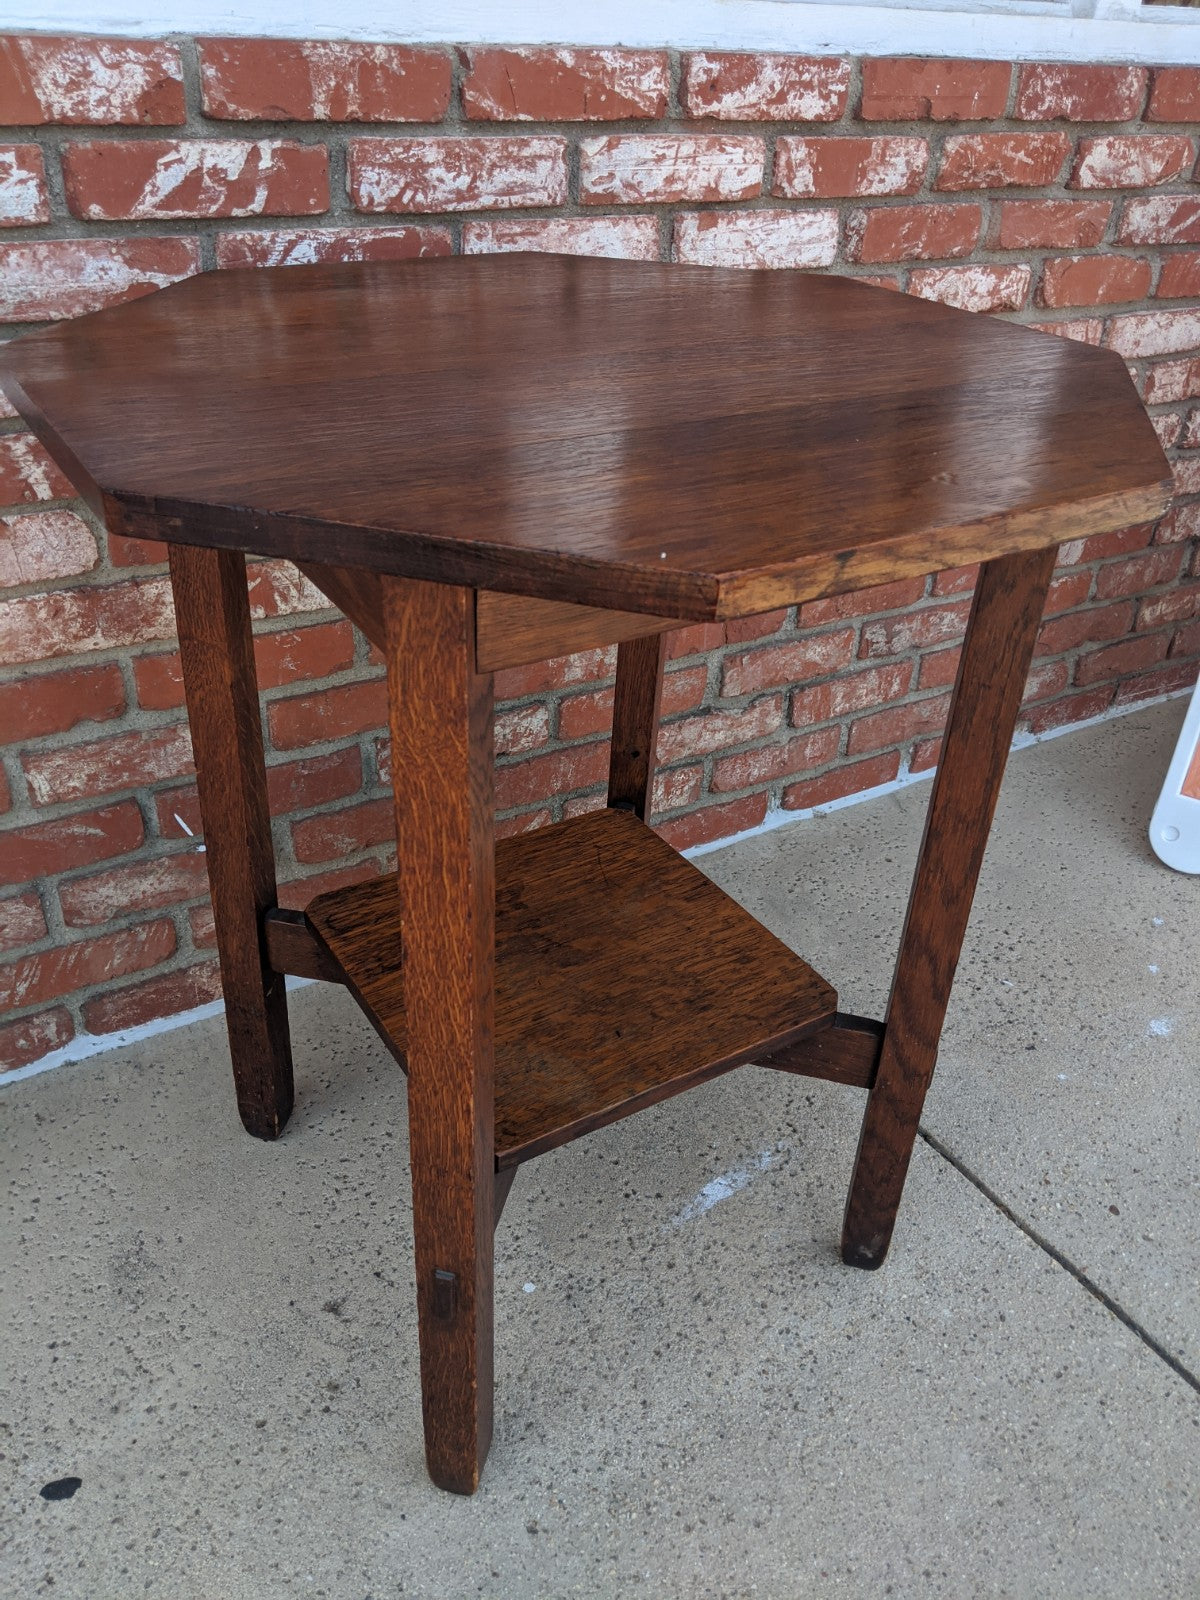 Antique octagonal, two-tiered, oak side table